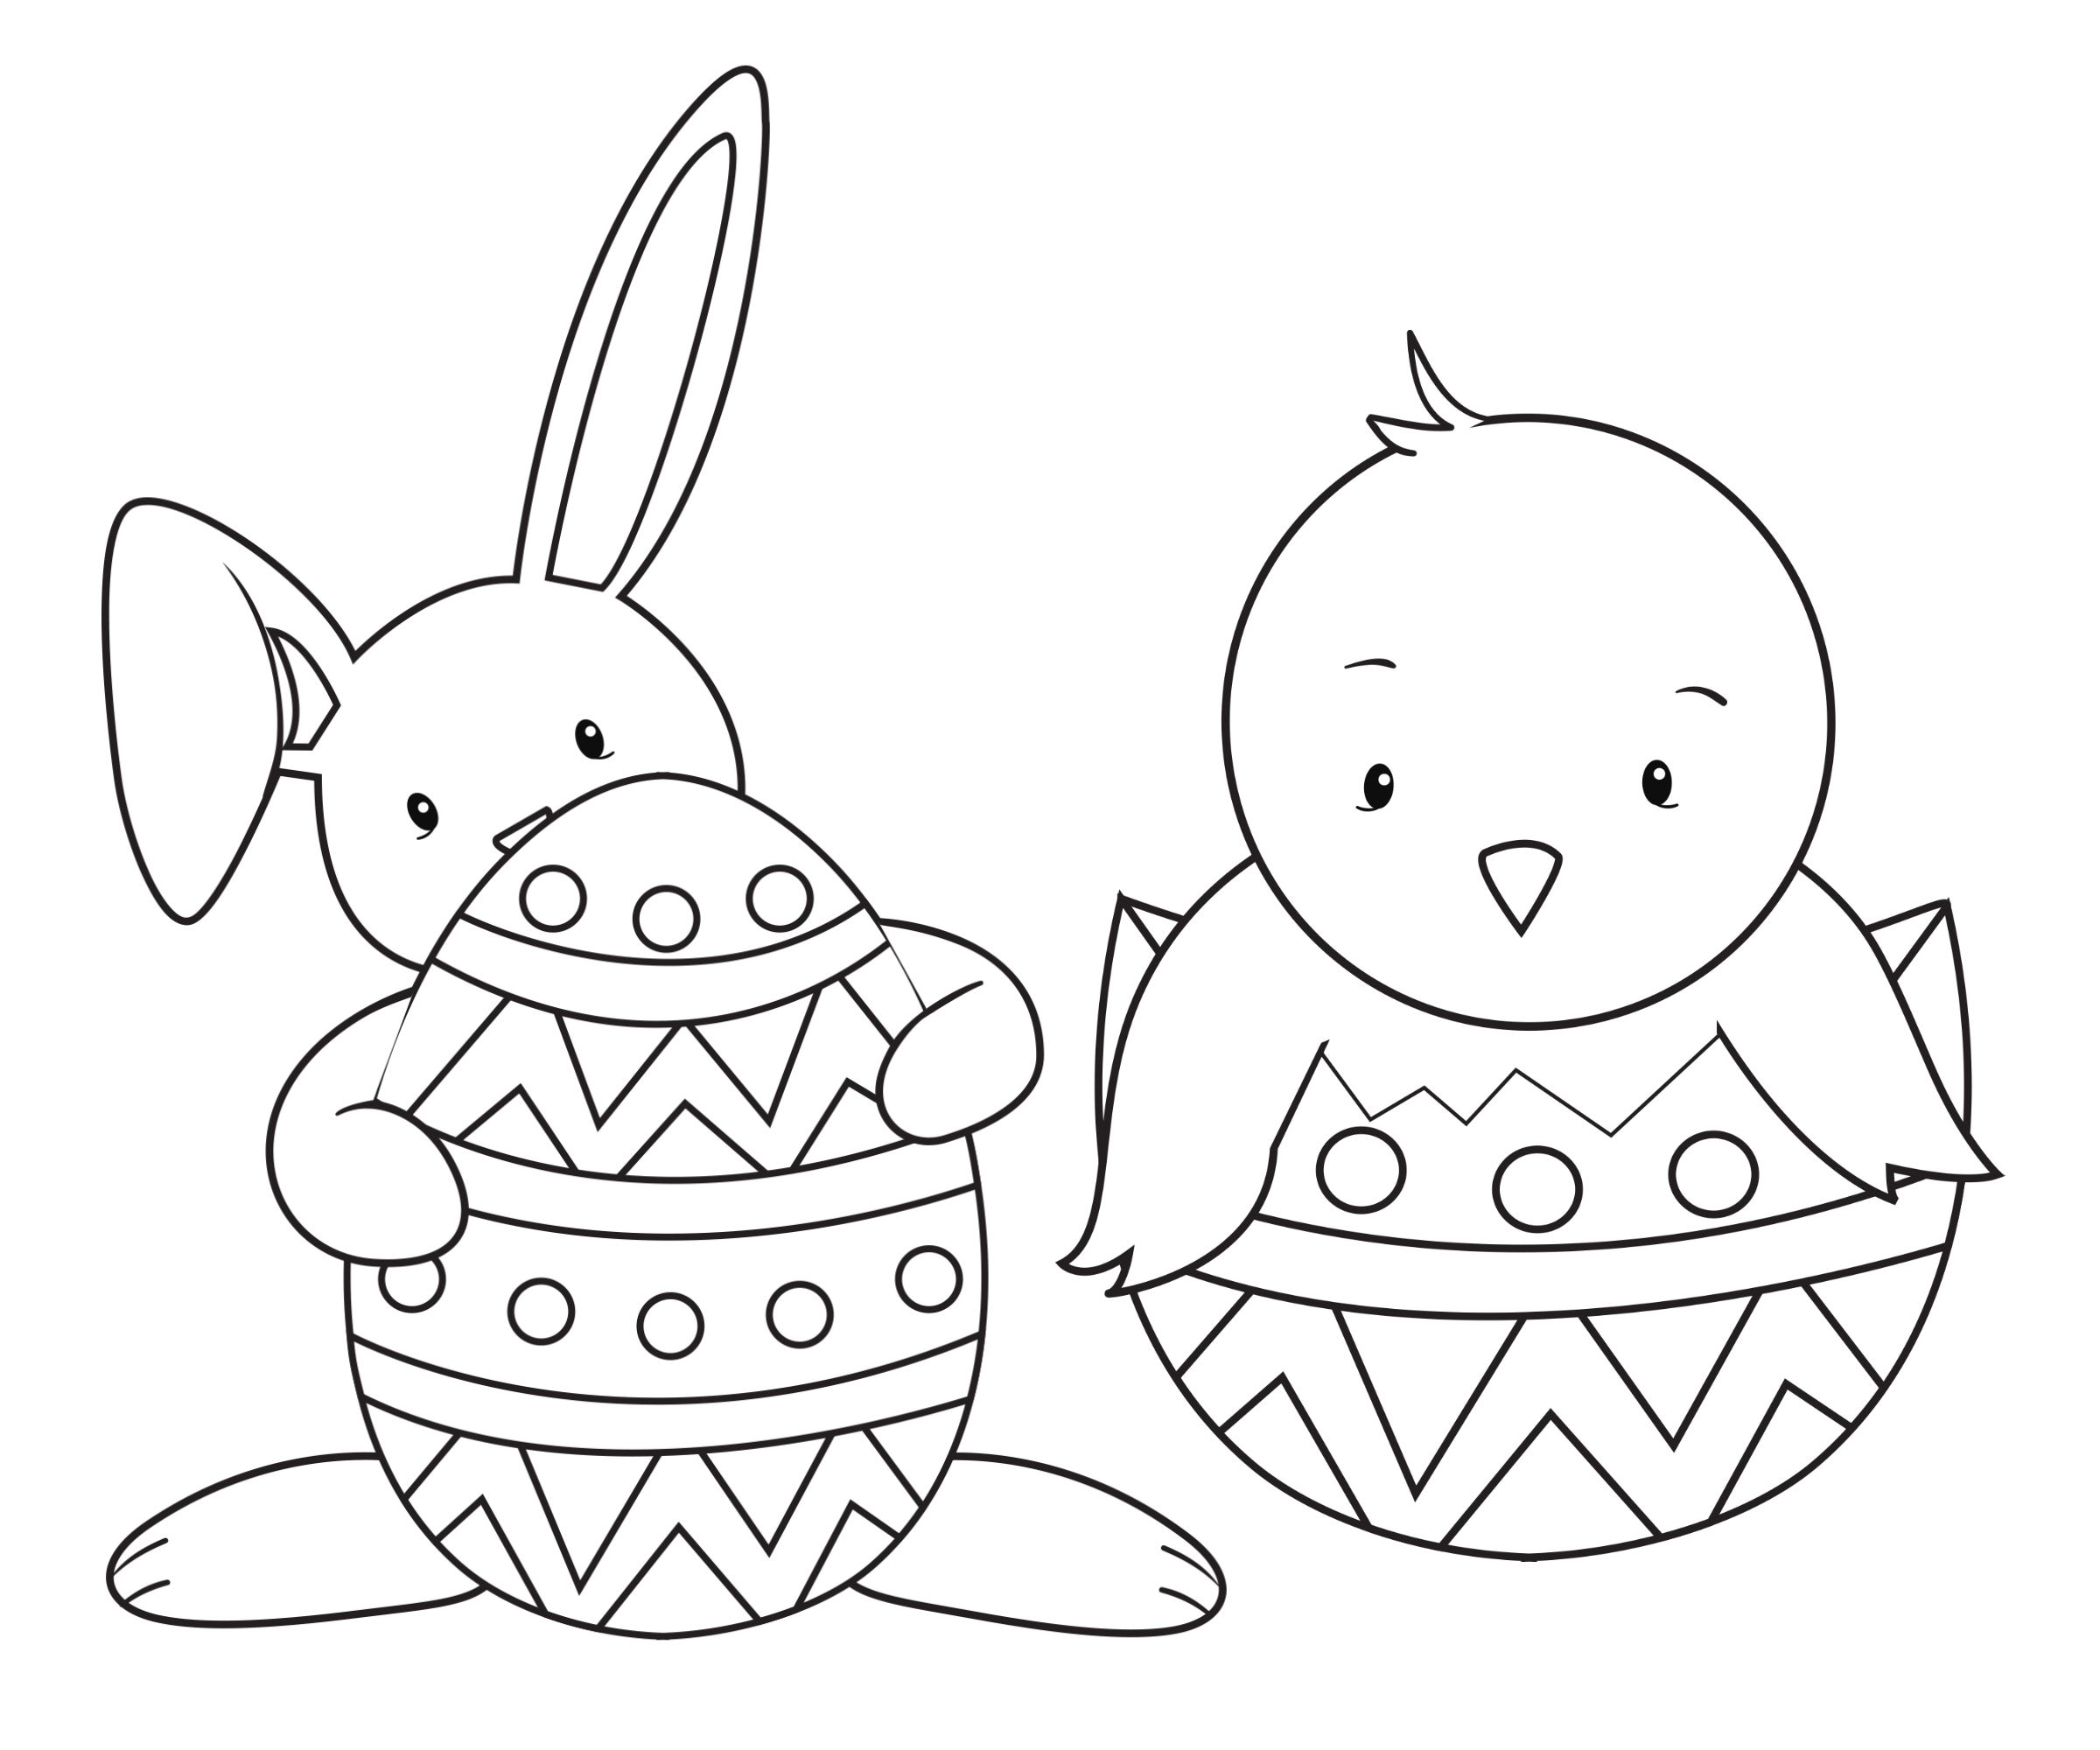 Easter Coloring Pages For Kids Easter Coloring Pages Printable Bunny Coloring Pages Easter Coloring Sheets